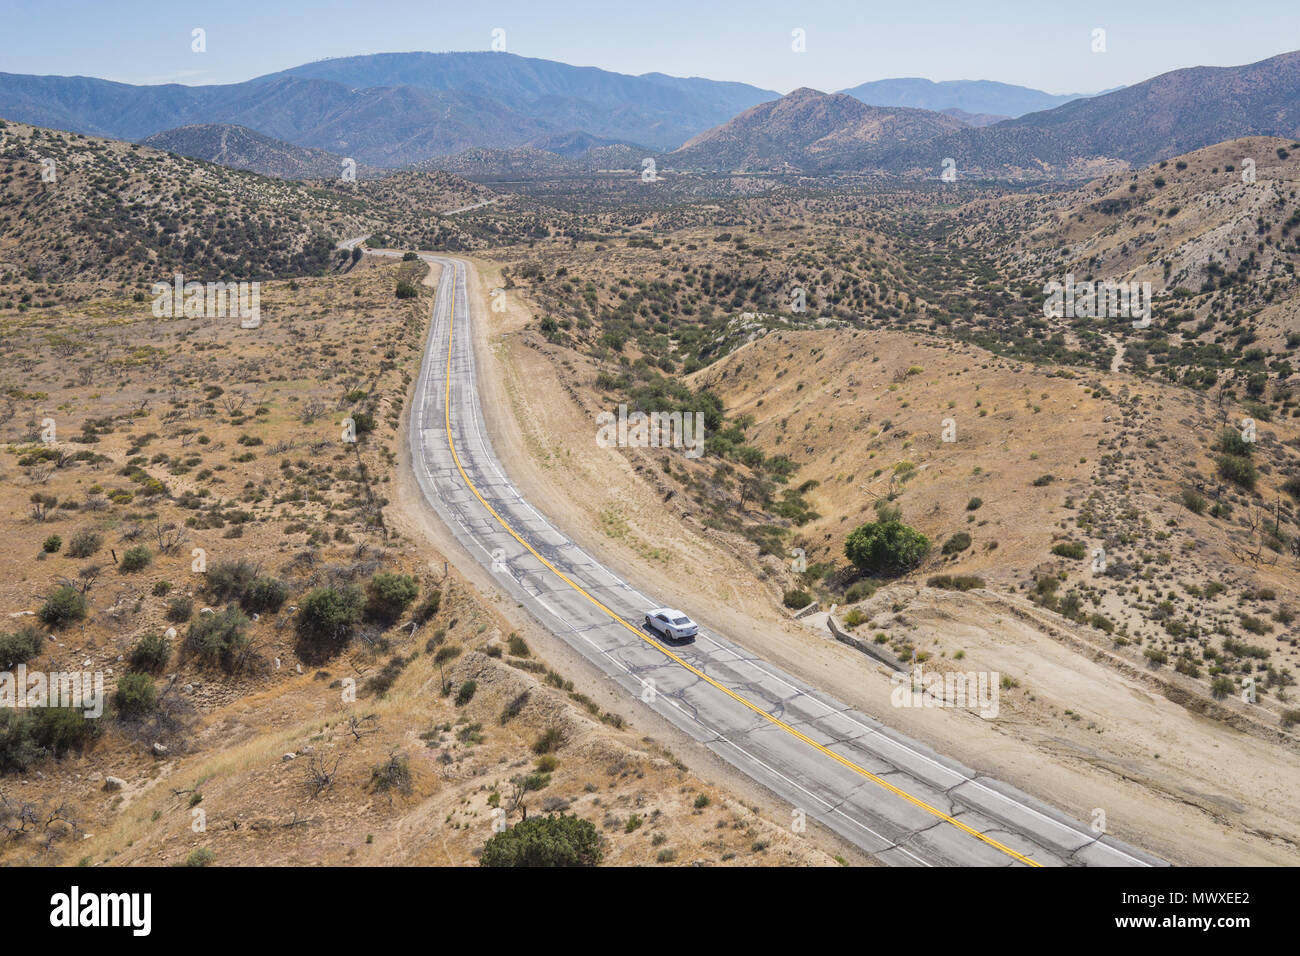 Single car on empty wilderness road in the Mojave Desert of southern California. - Stock Image